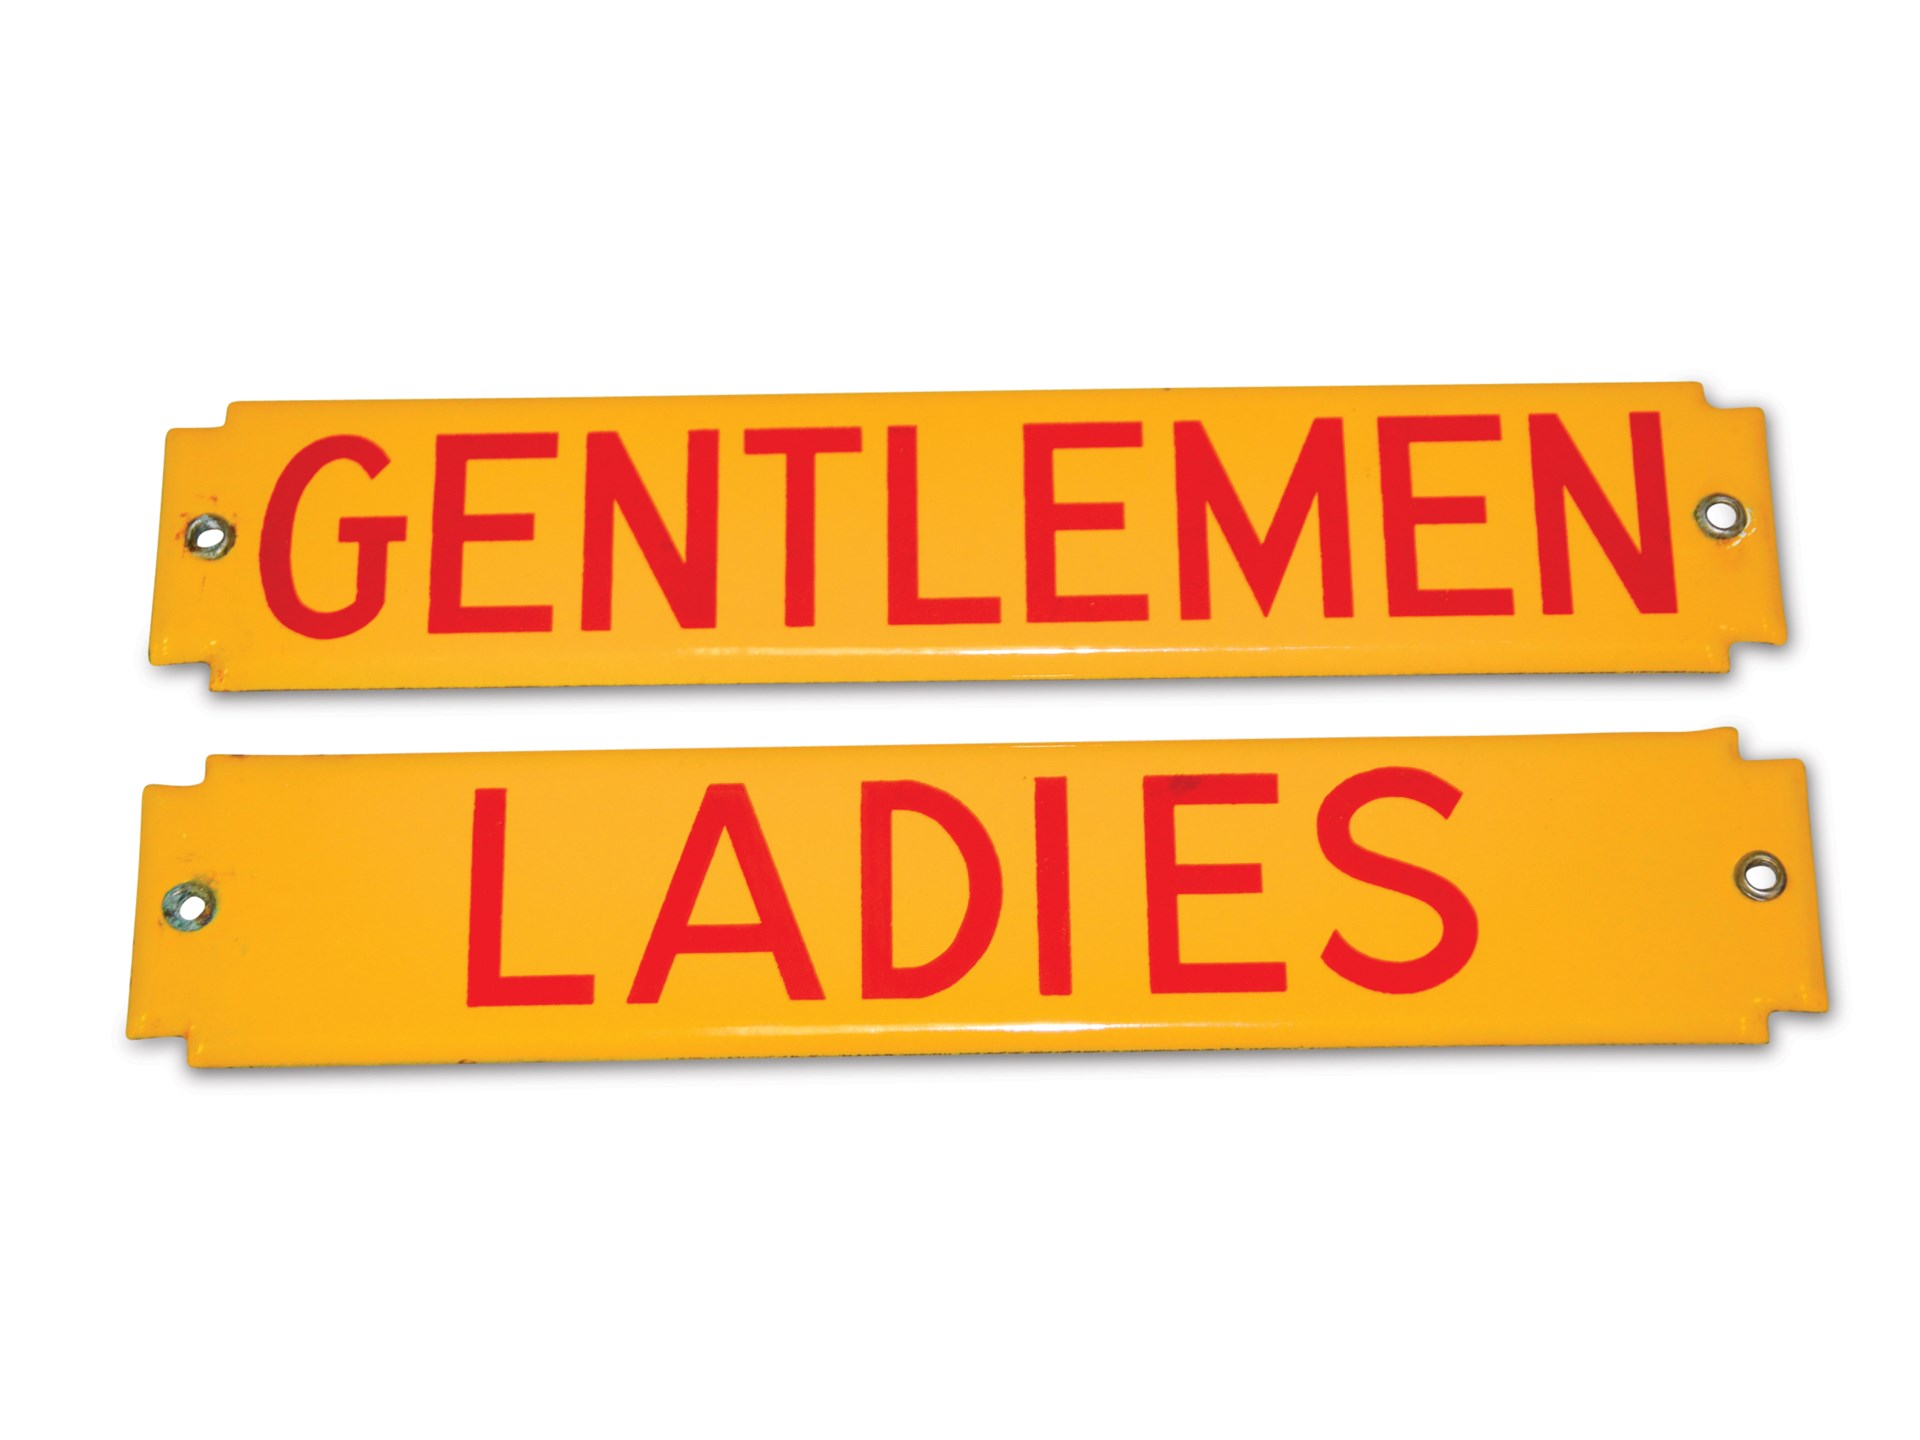 Ladies and gentelmen